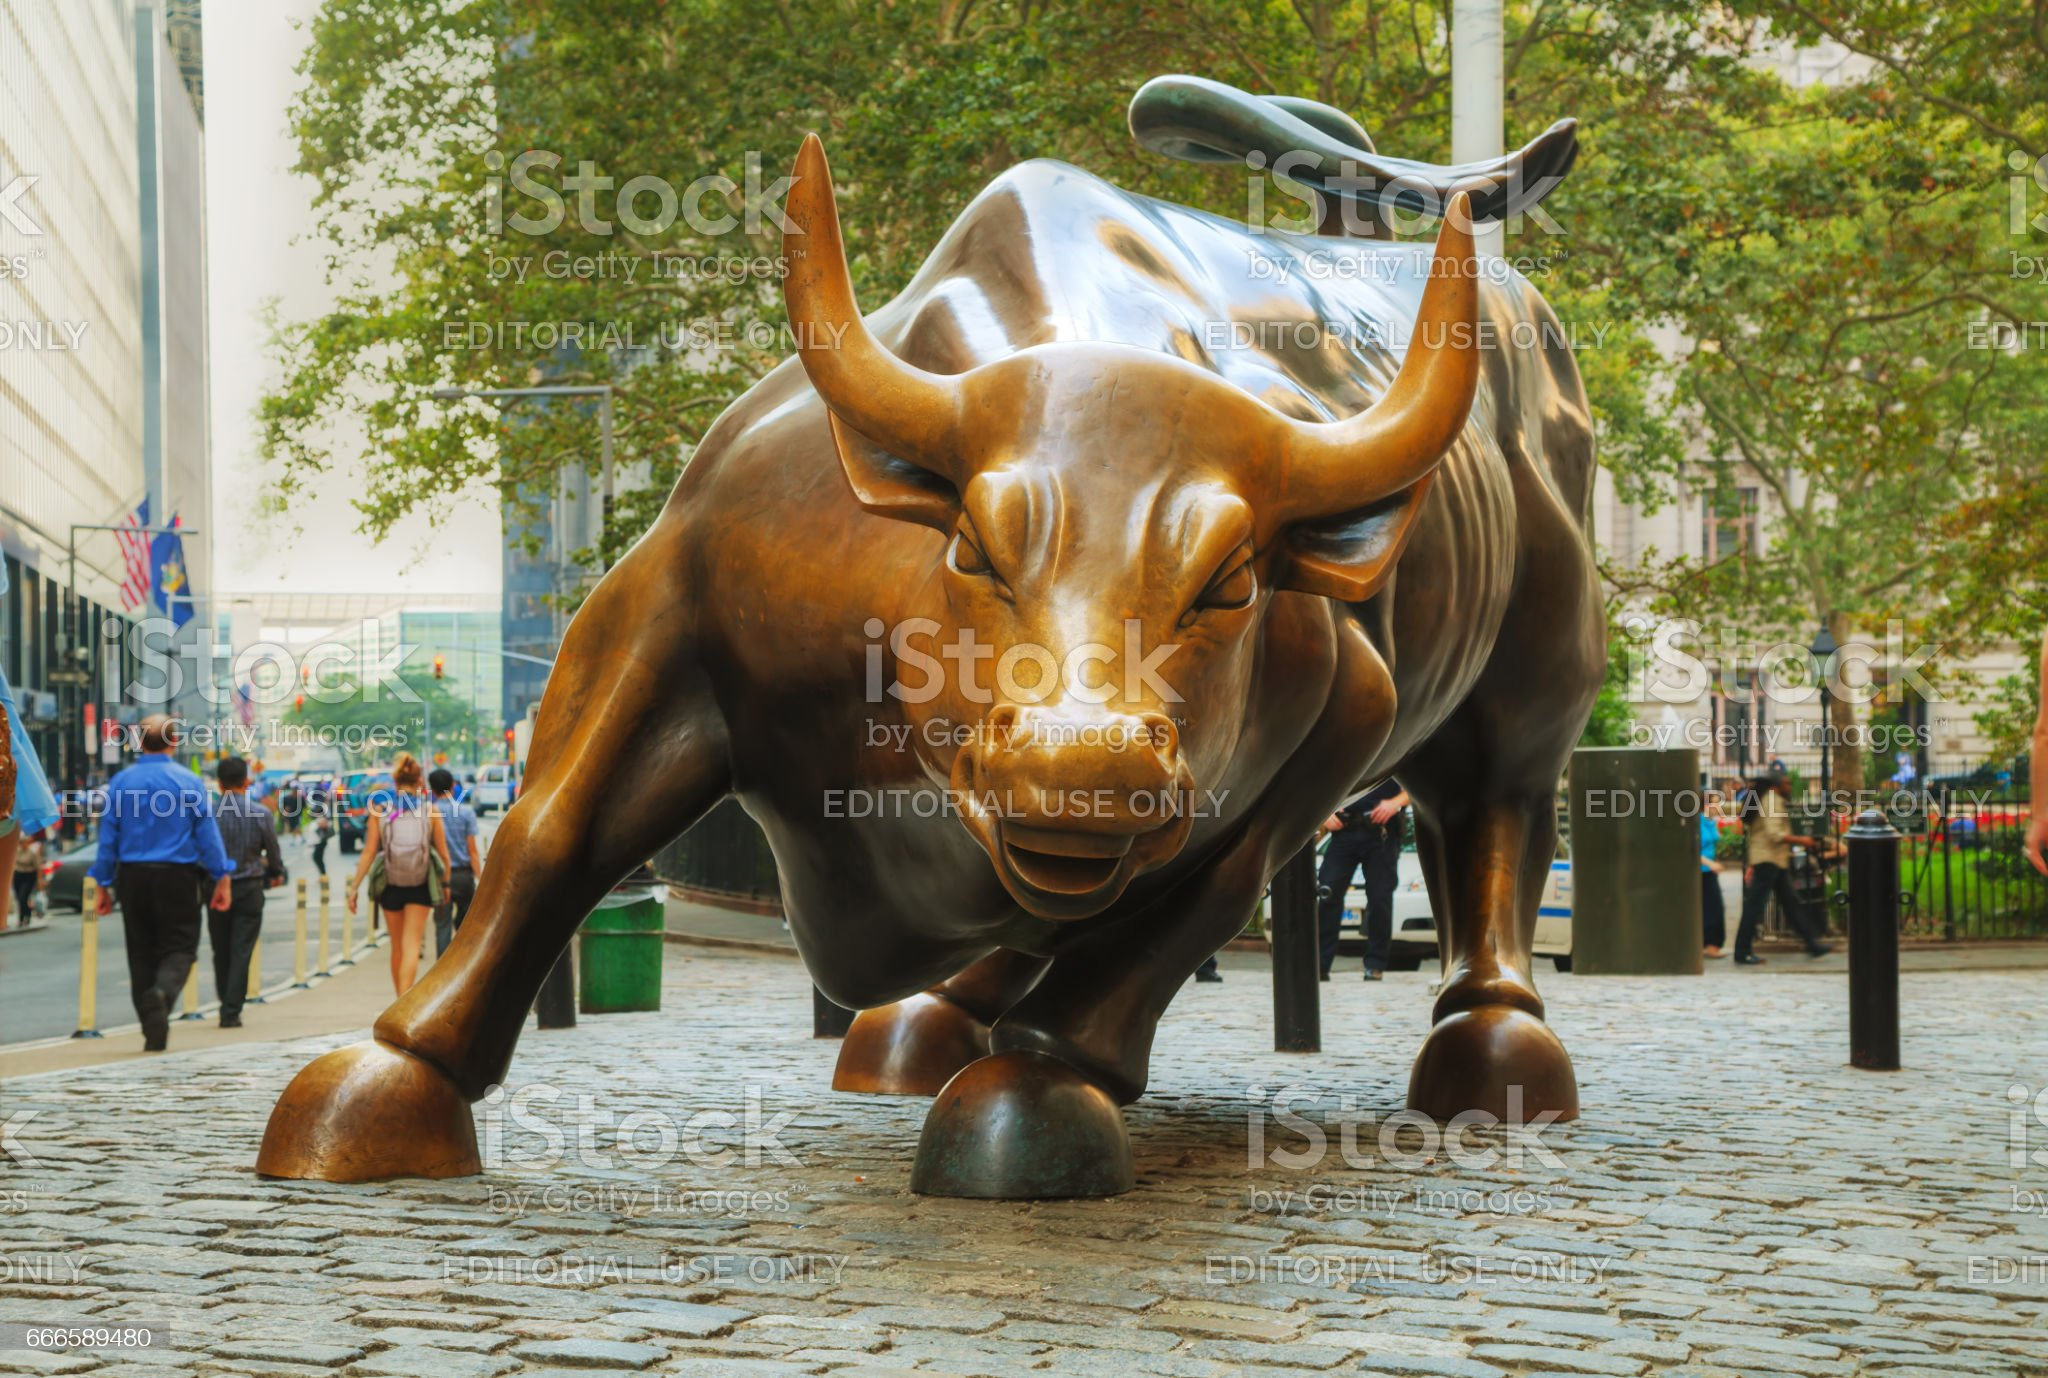 UFO 18 10  2018 r. - Page 2 Charging-bull-sculpture-in-new-york-city-picture-id666589480?s=2048x2048